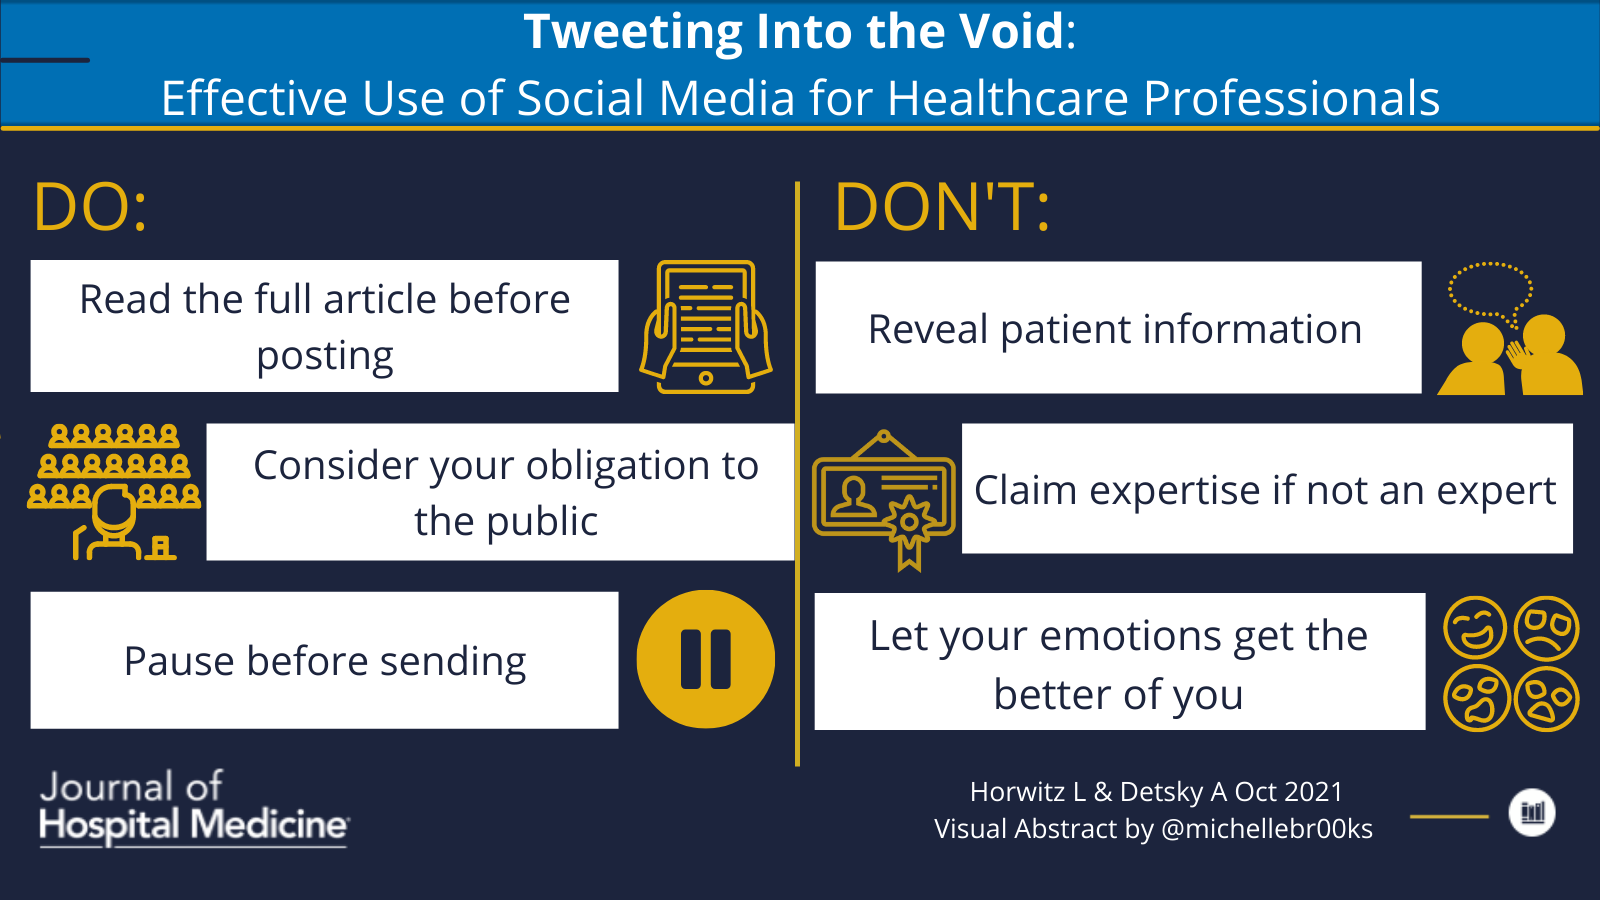 Tweeting Into the Void: Effective Use of Social Media for Healthcare Professionals